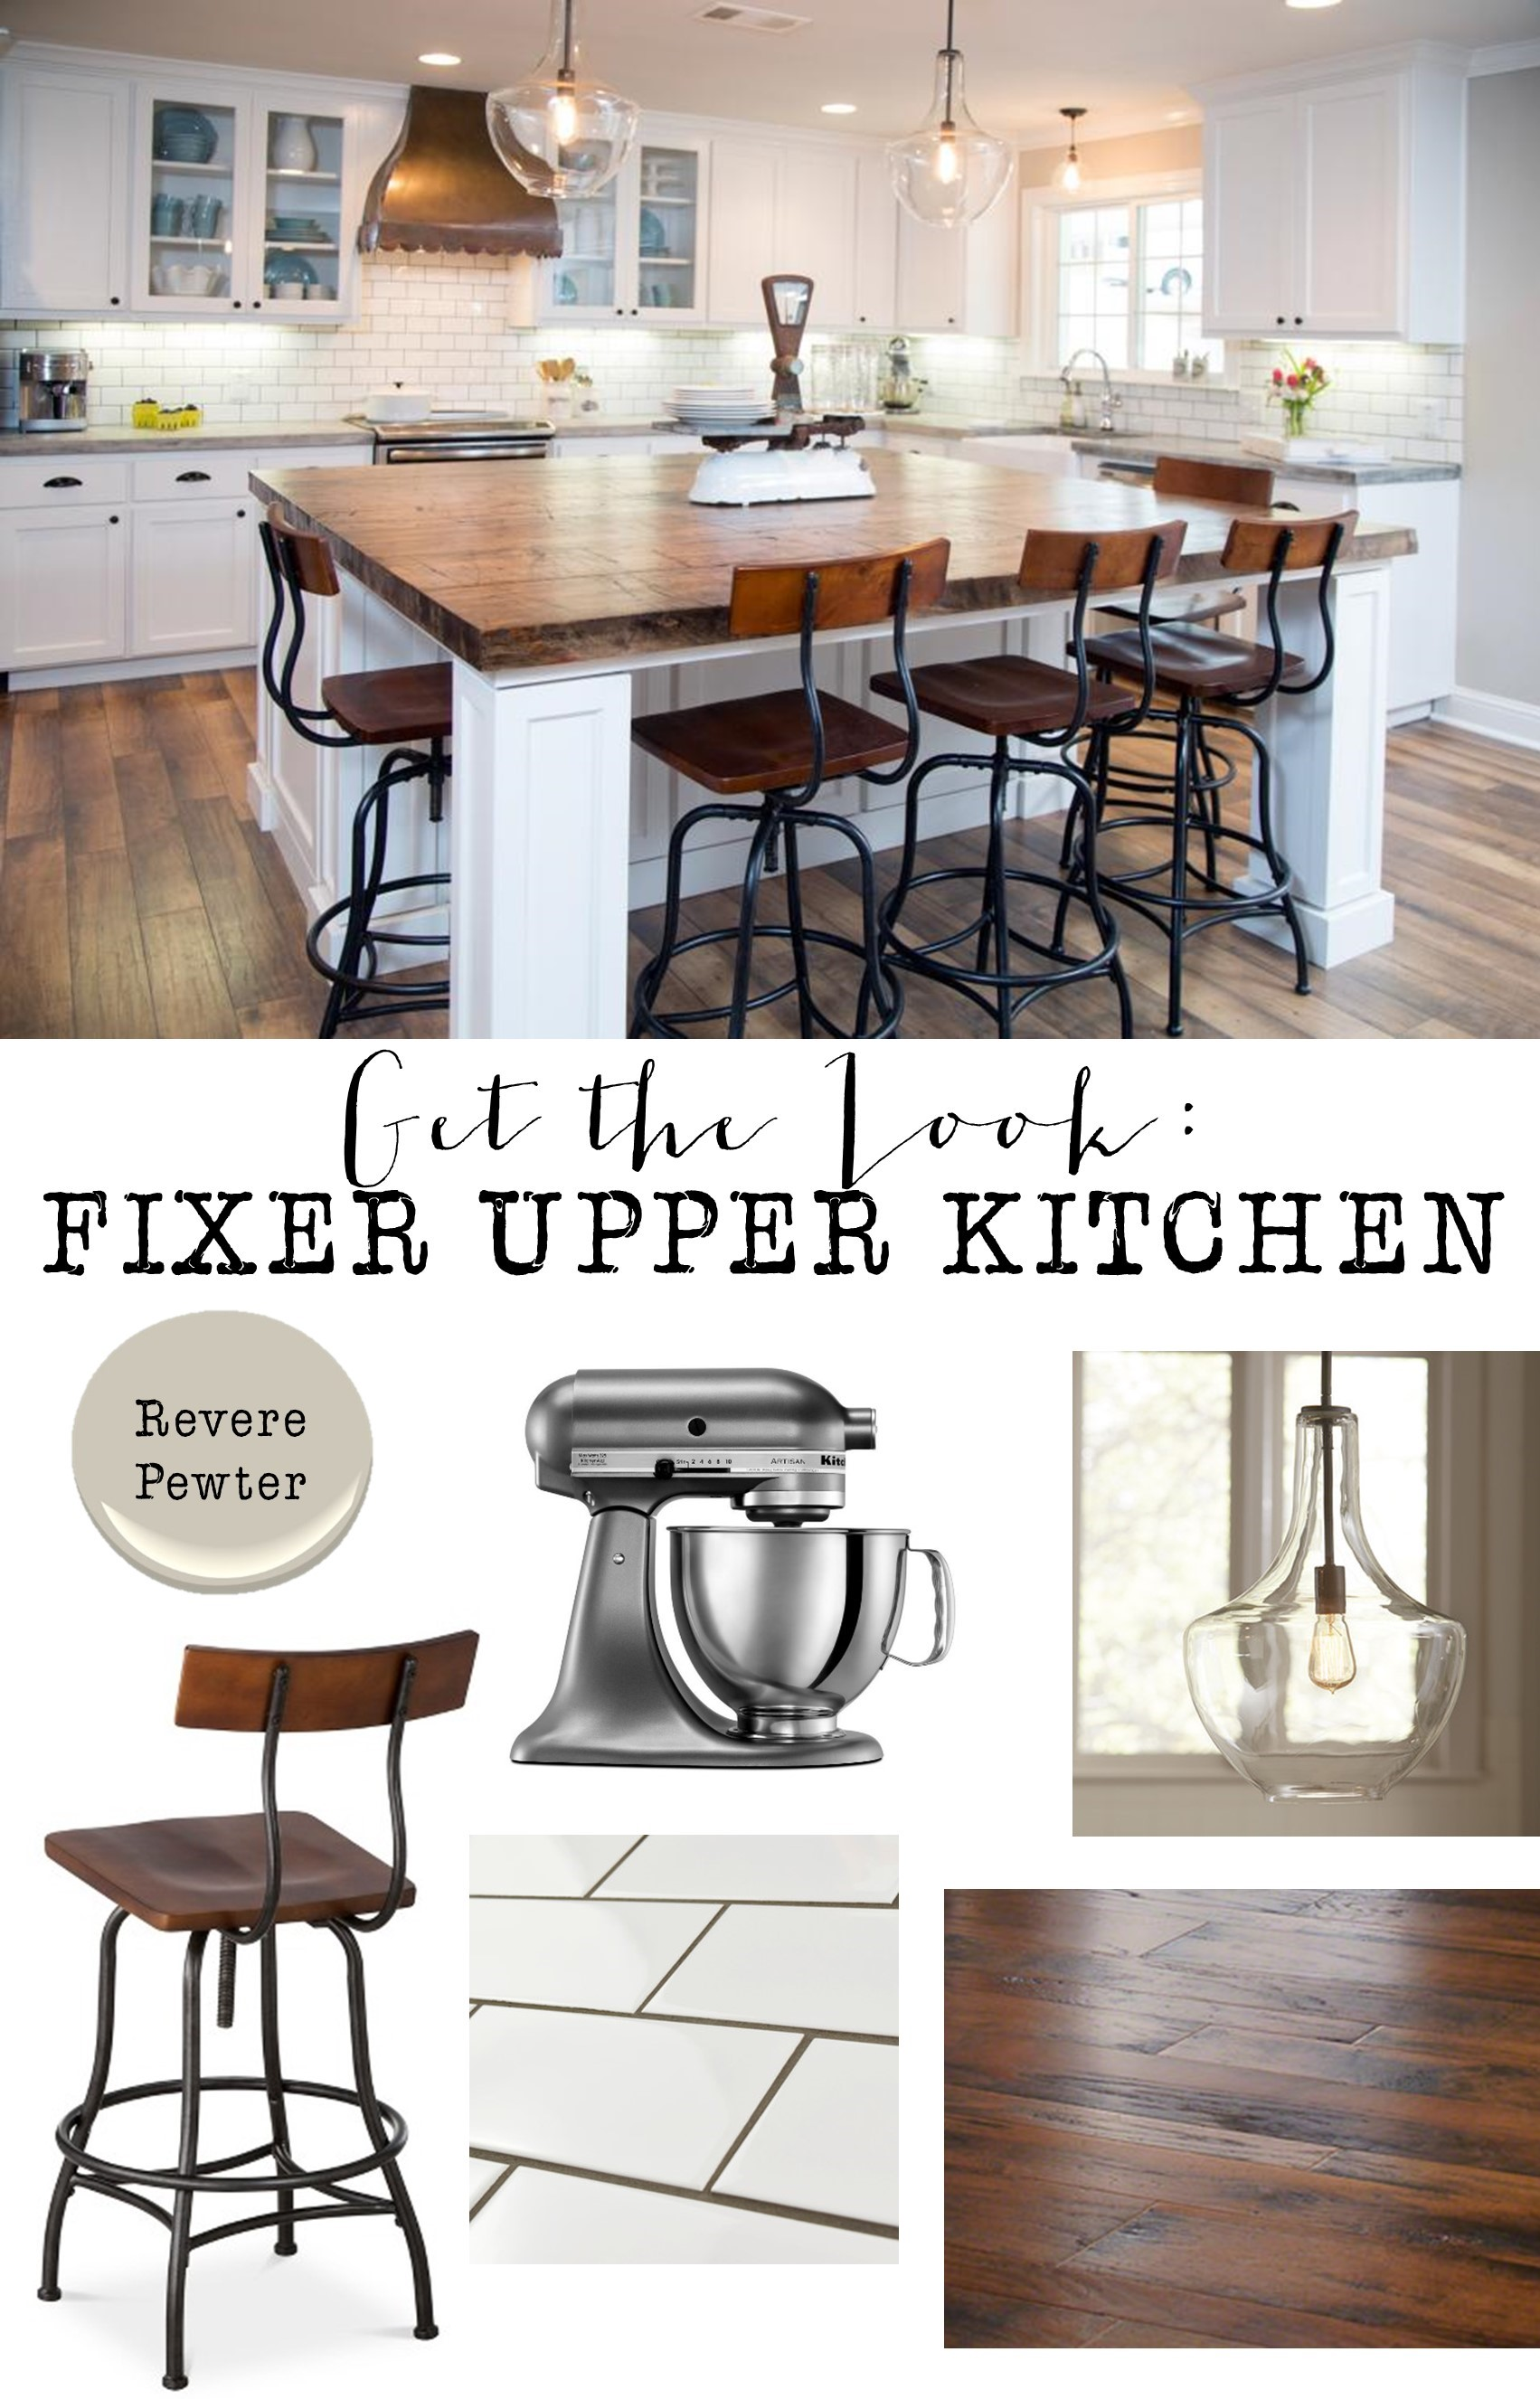 Fixer upper kitchen pendants - Get The Look Fixer Upper Kitchen 6